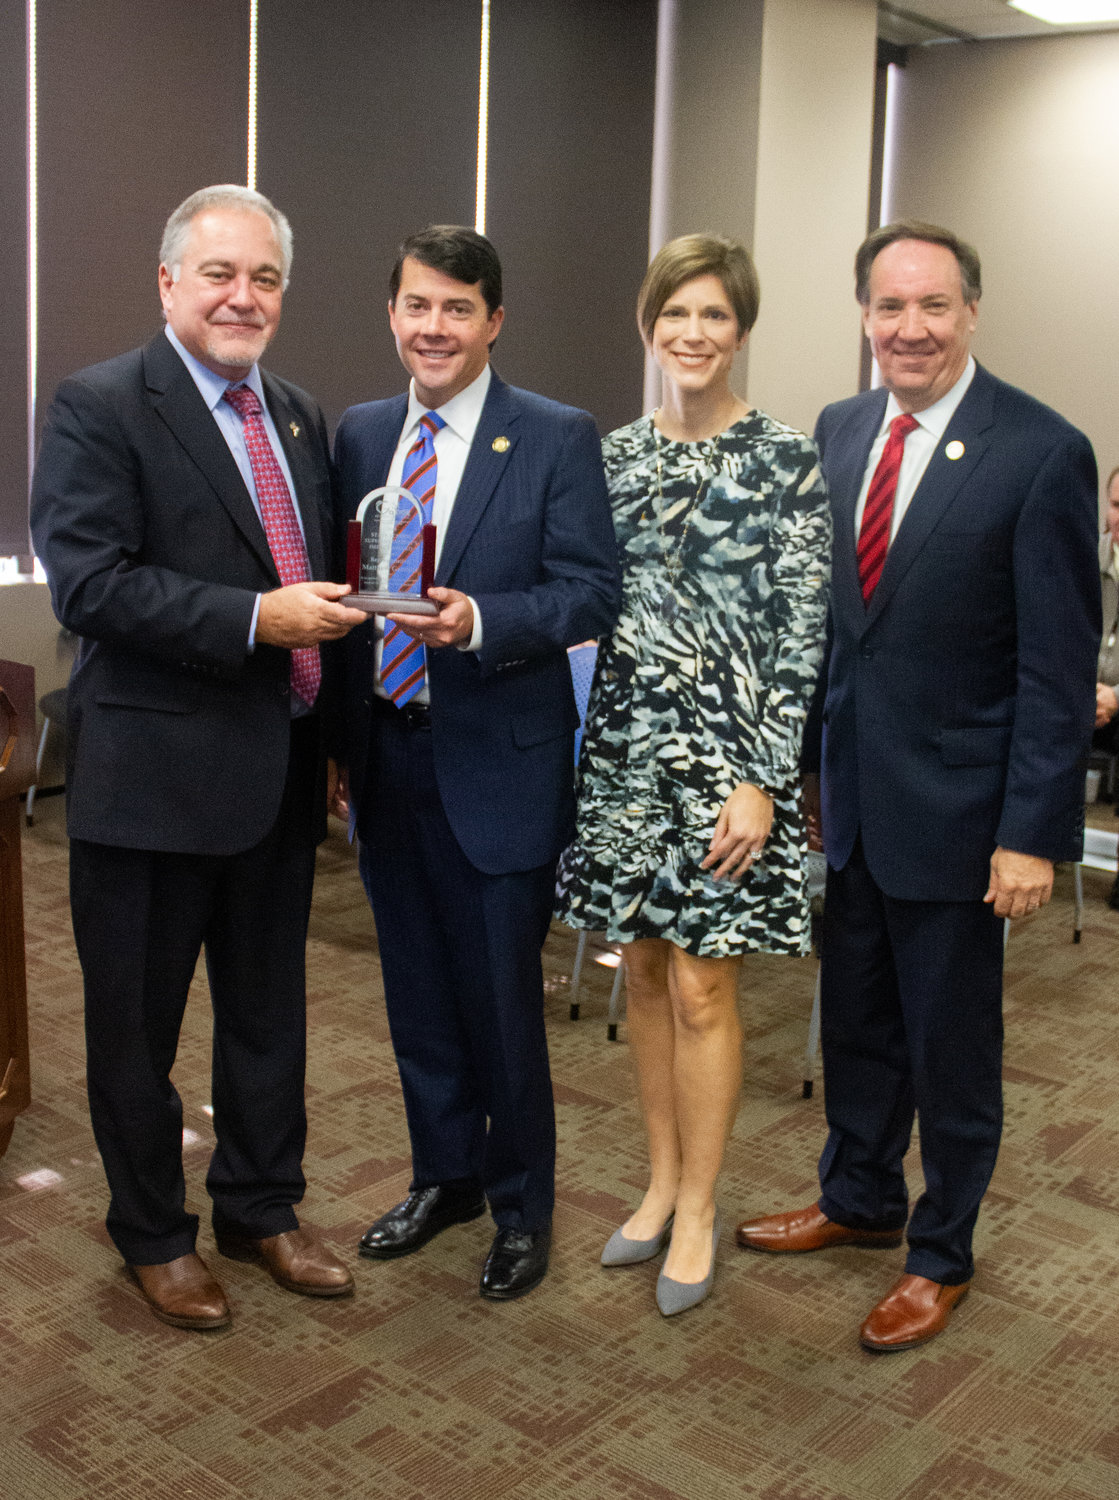 Celebrating with Superintendent's Impact Award winner state Rep. Matthew Gambill, second from left, are, from left, State School Superintendent Richard Woods, Danae Gambill and State Board of Education Chairman Scott Johnson.